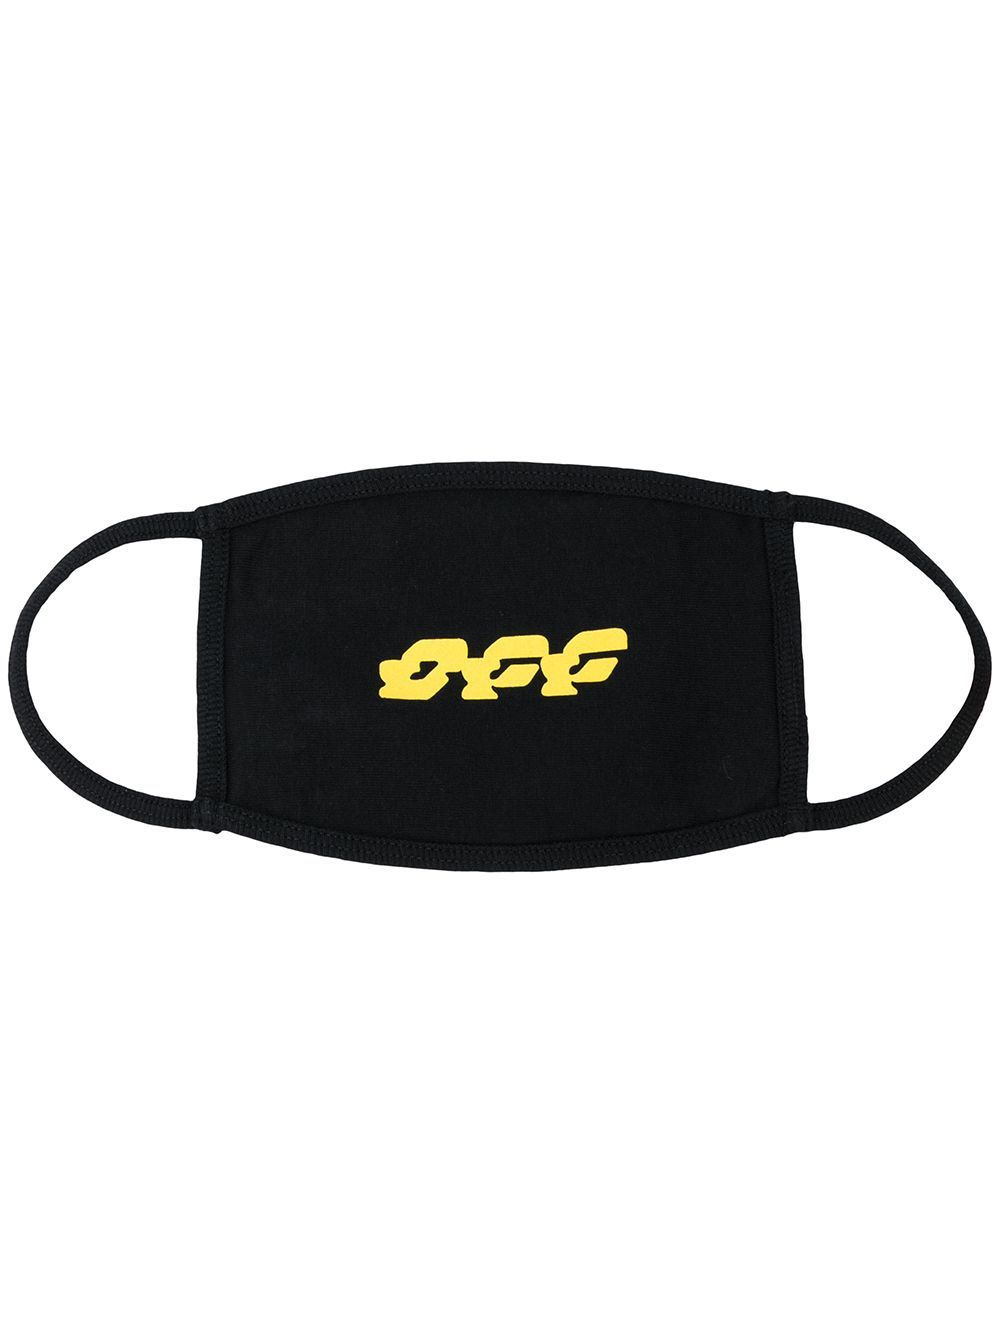 OFF-WHITE disrupted font mask black/yellow